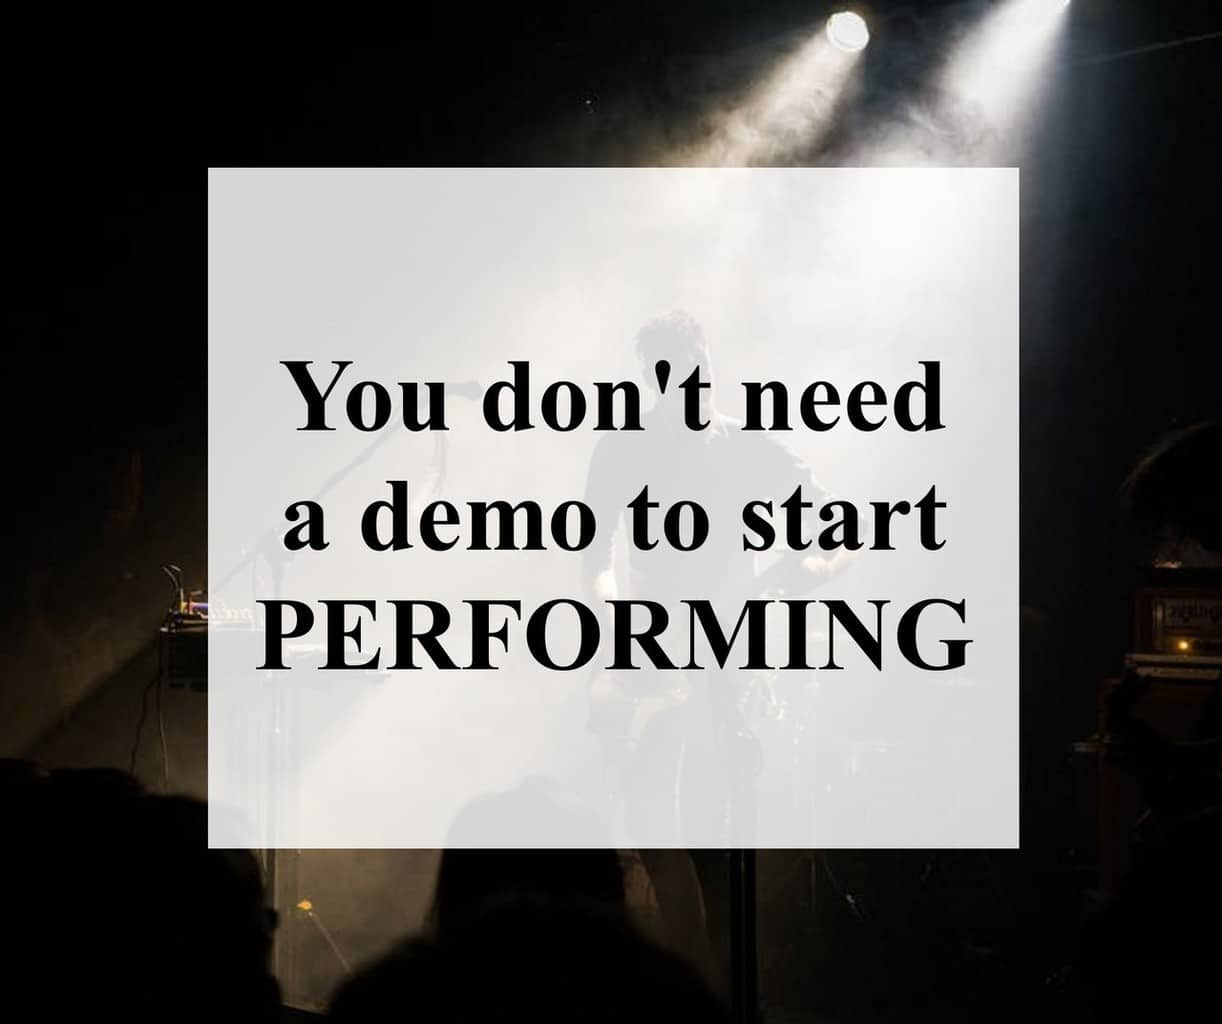 Perform, don't demo